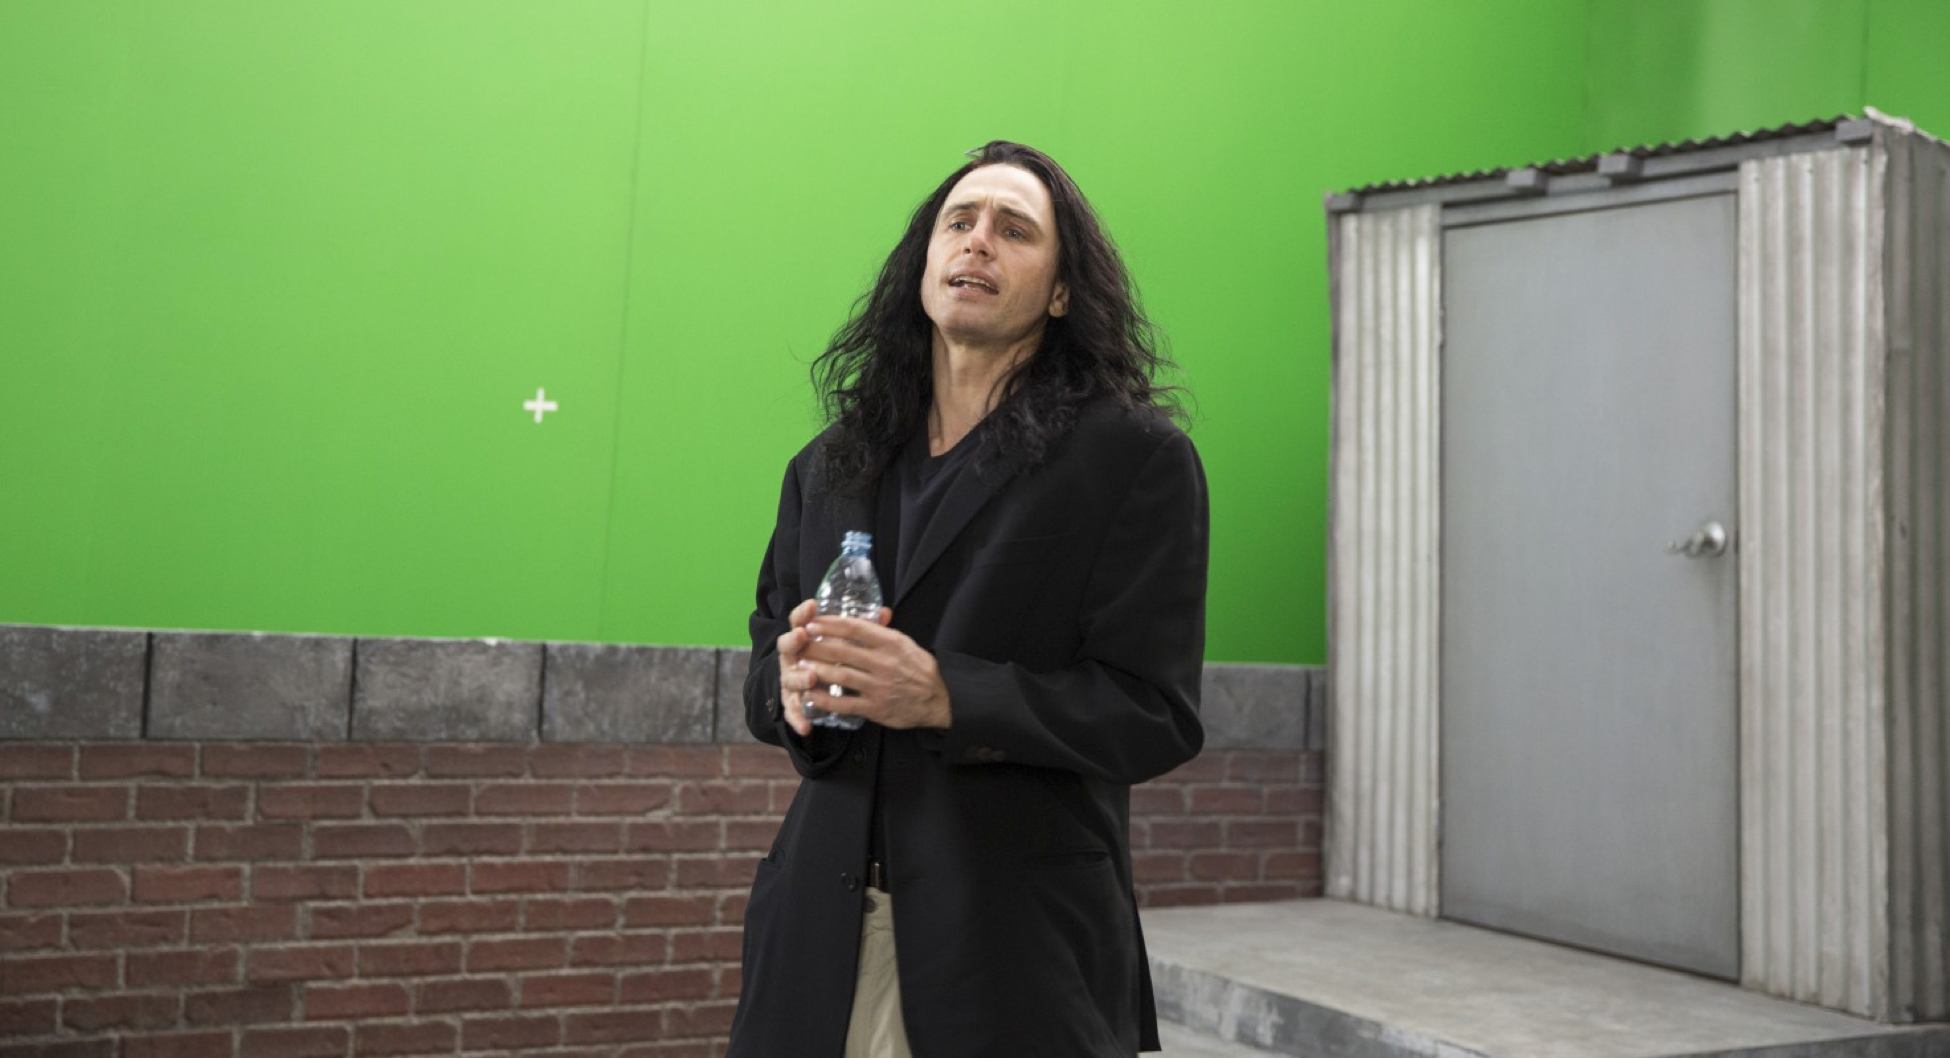 AFI FEST The Disaster Artist